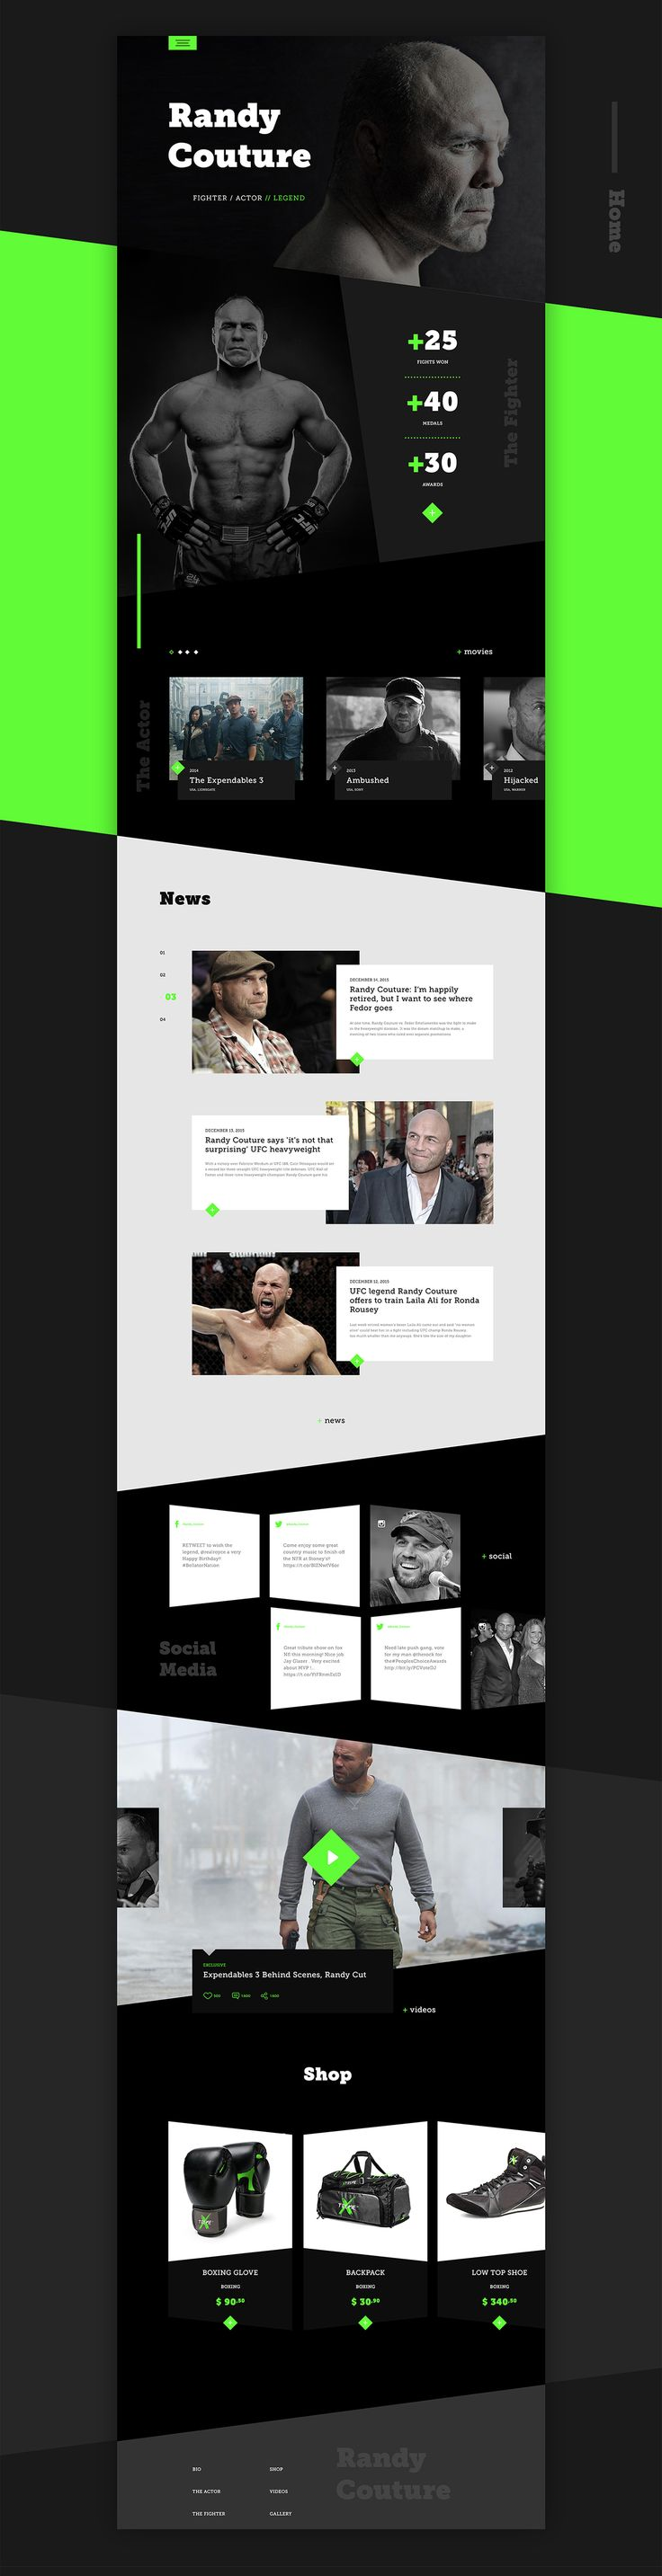 Randy Couture is a living legend. He's an MMA World Champion and a member of the UFC Hall of Fame. Like us, he was considered to be the underdog, but nothing could keep him down for long. Having dominated the mixed martial art scene as a champion in two d…